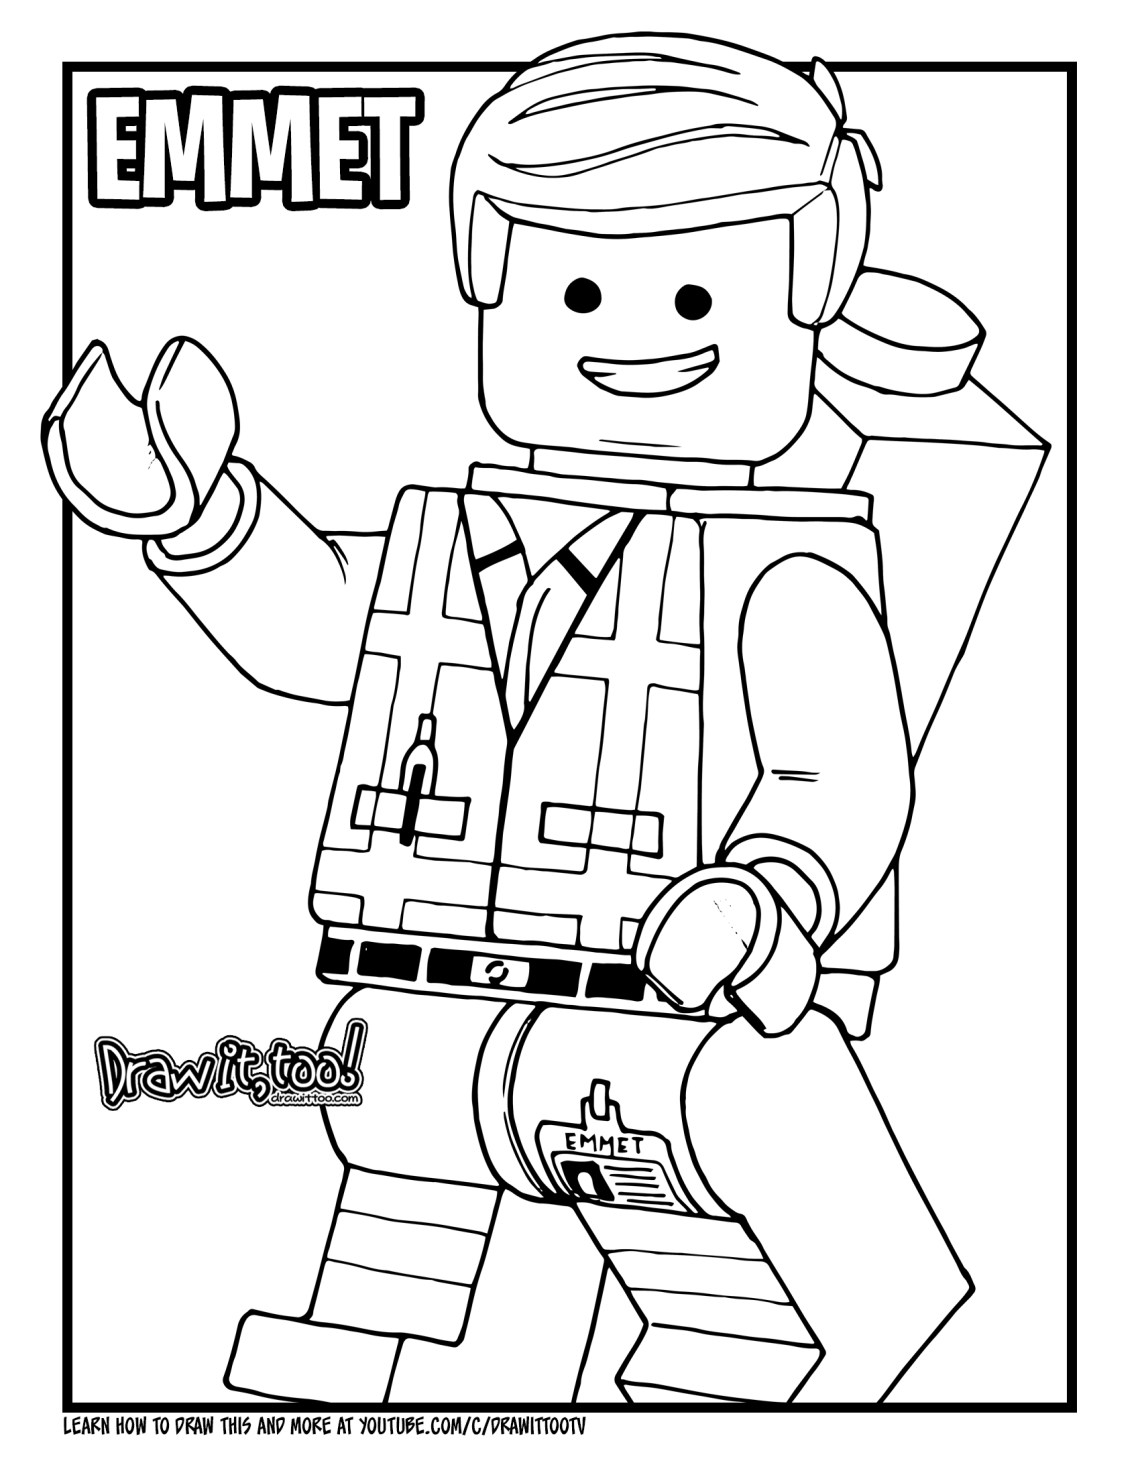 lego movie emmet coloring page lucy lego movie 2 coloring pages emmet coloring lego page movie